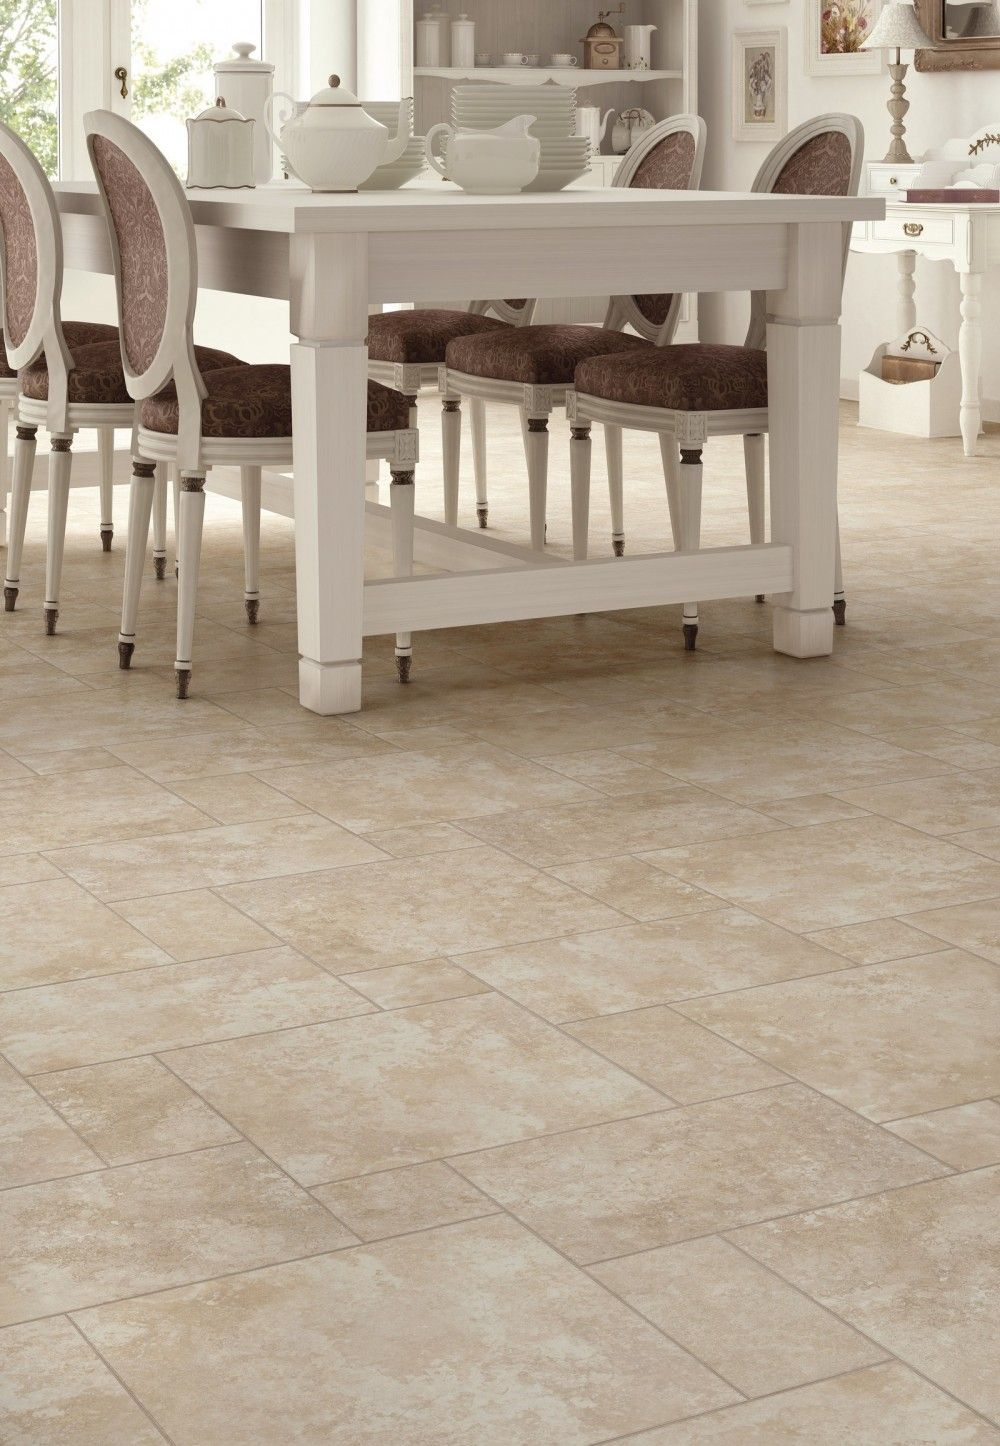 Lake district modular beige modular stone effect matt porcelain tile lake district modular beige modular stone effect matt porcelain tile from tilemountain dailygadgetfo Image collections